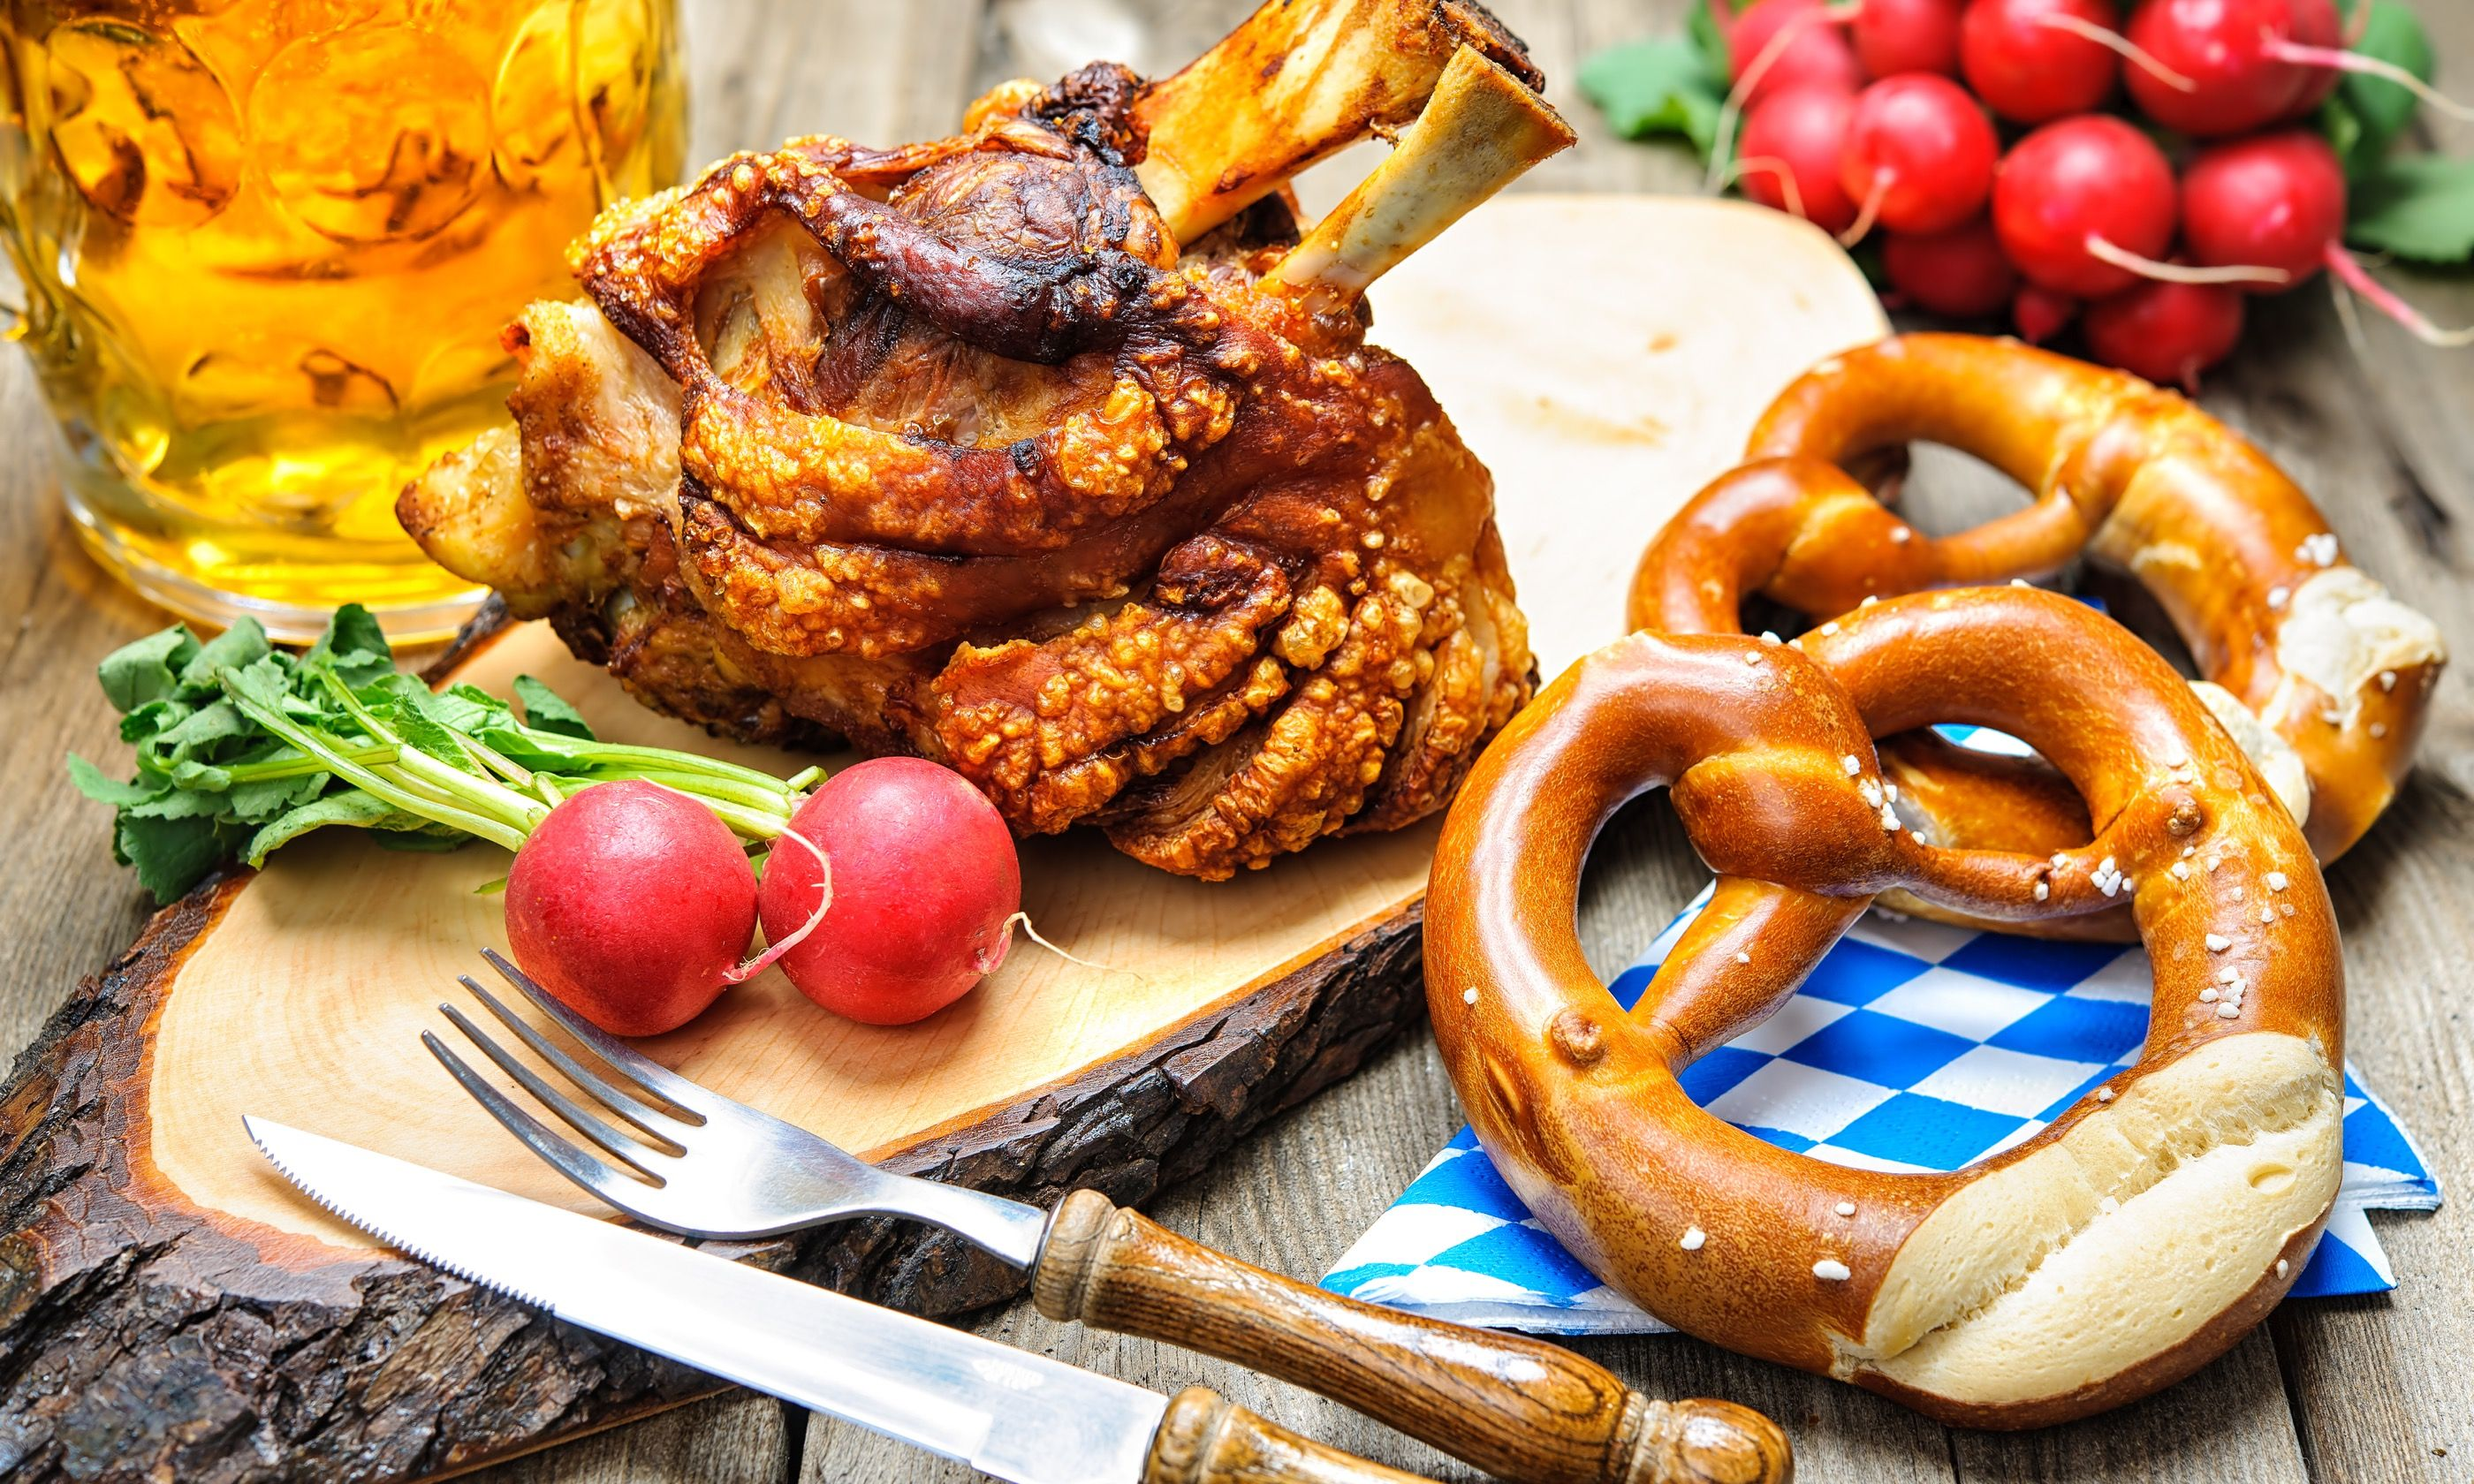 An Oktoberfest staple – pork knuckle and pretzels (Dreamstime)